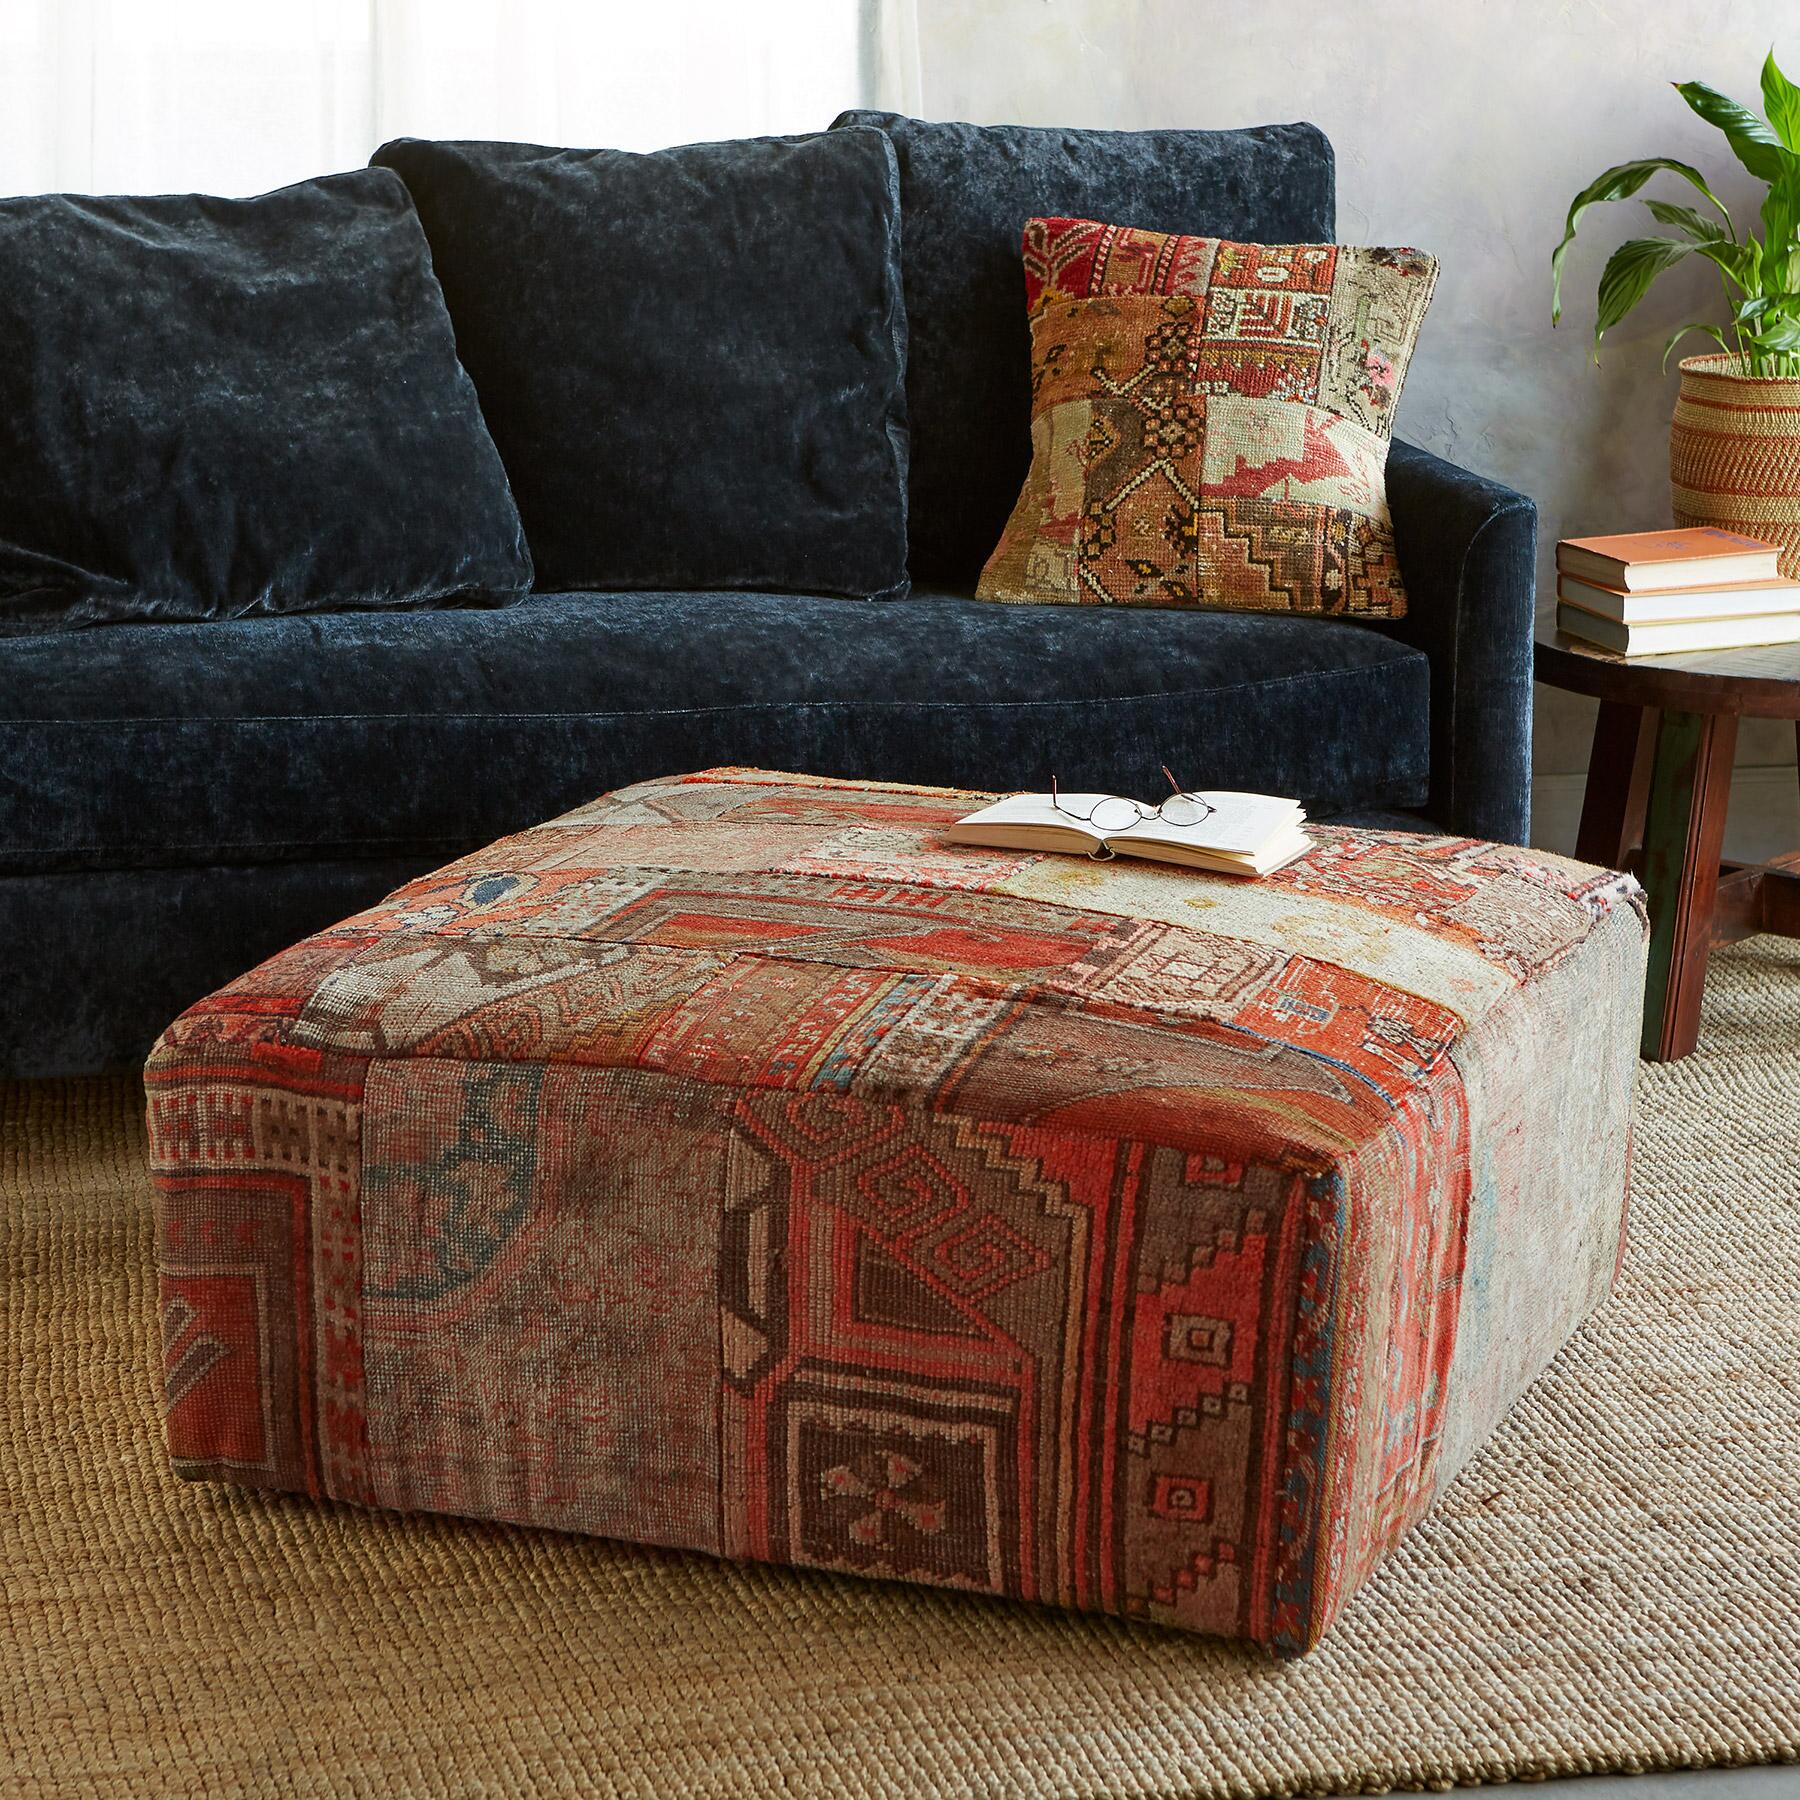 Superb Vintage Carpet Upholstered Ottoman Robert Redfords Caraccident5 Cool Chair Designs And Ideas Caraccident5Info